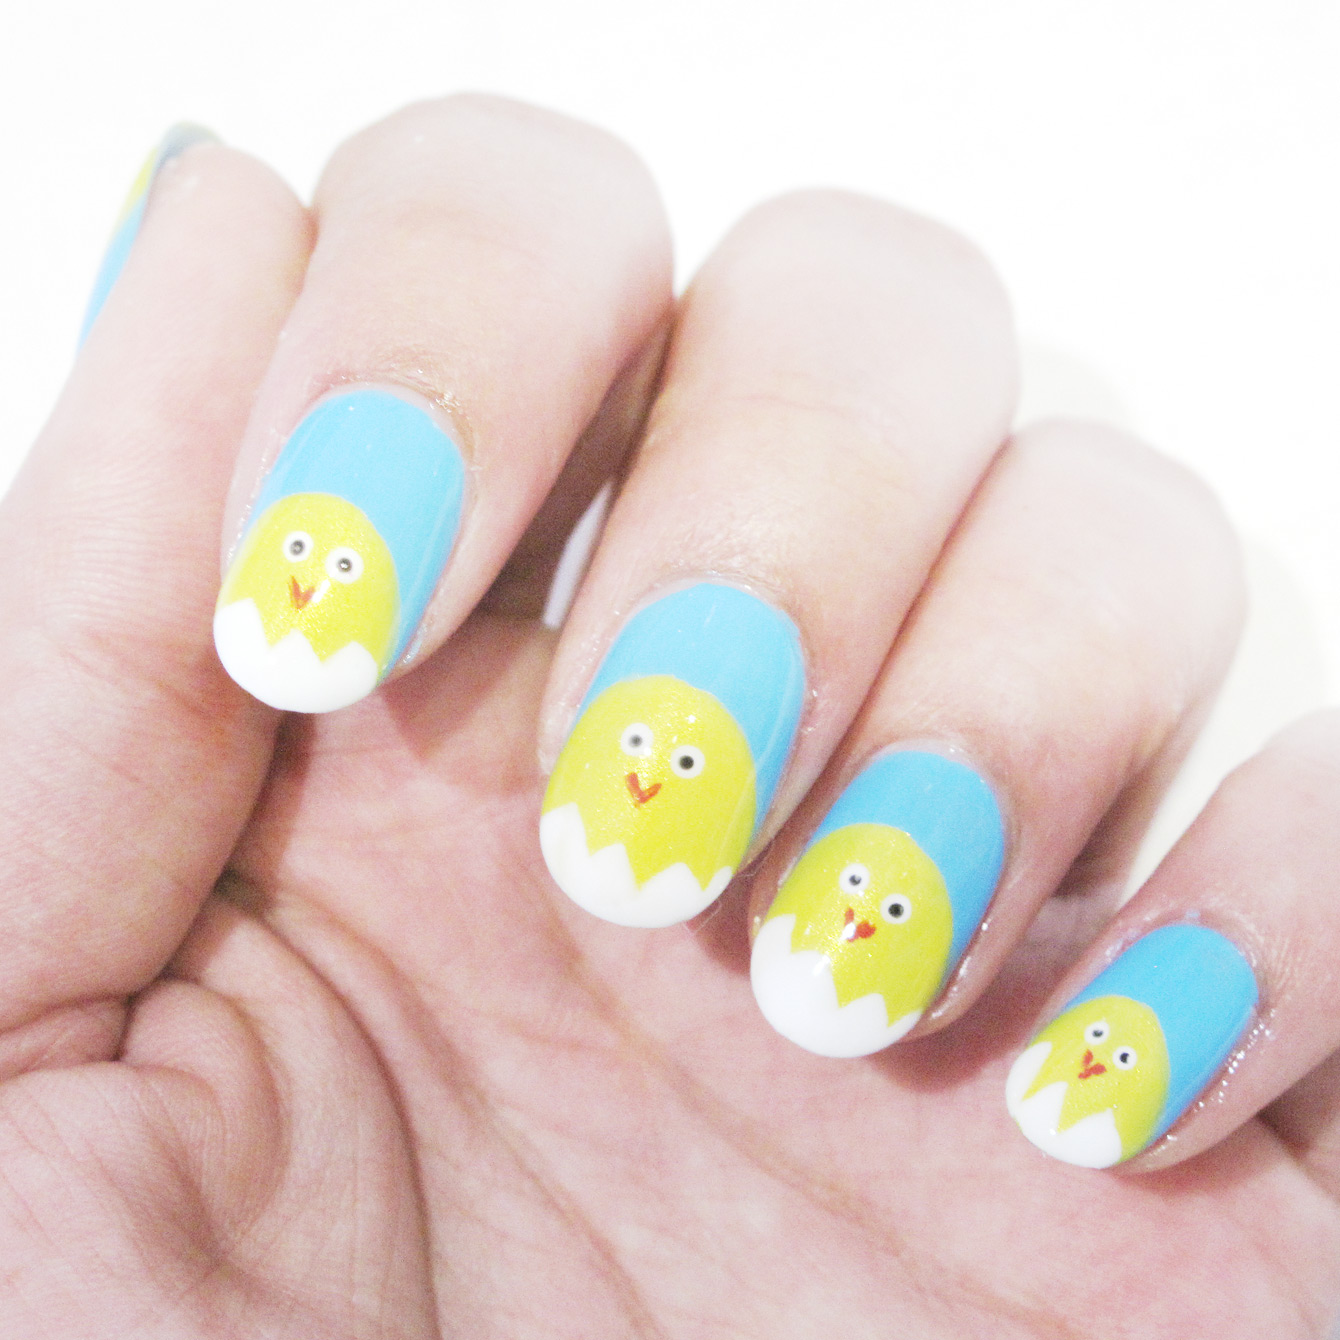 easter nail designs 23 30 Awesome Easter Nail Designs 2015 30 Awesome Easter Nail Designs 2015 easter nail designs 23